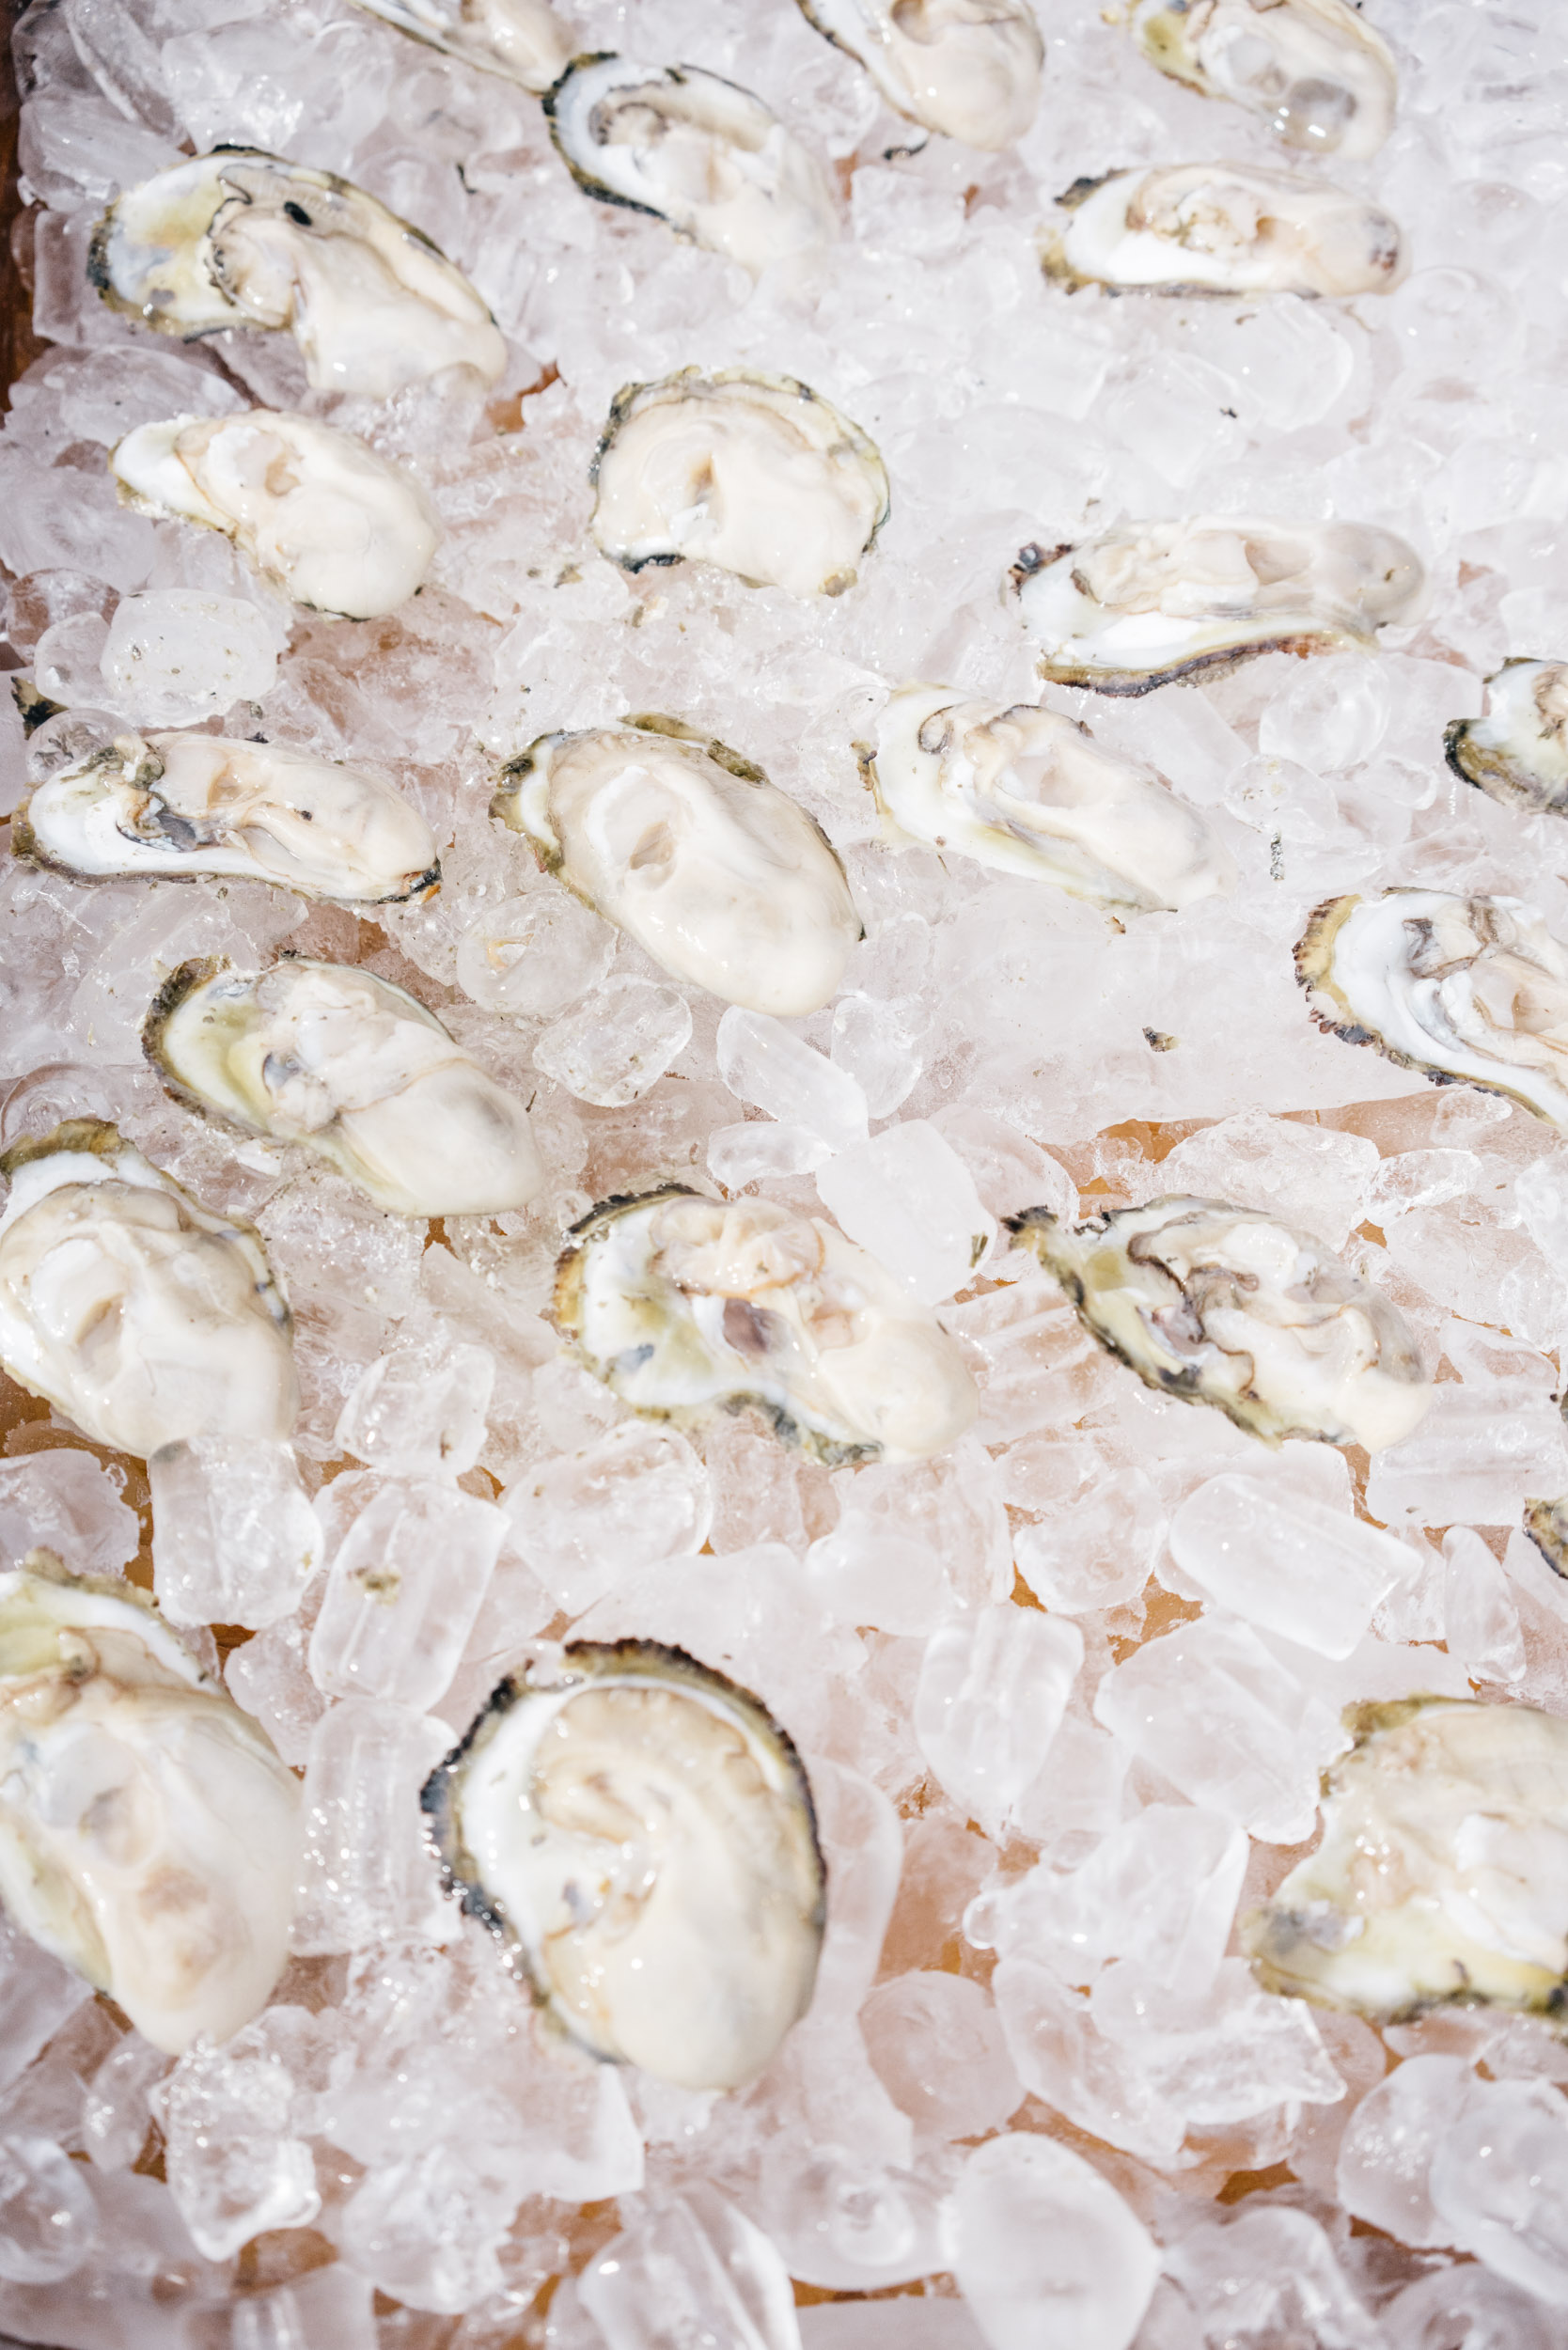 oysters served up on ice